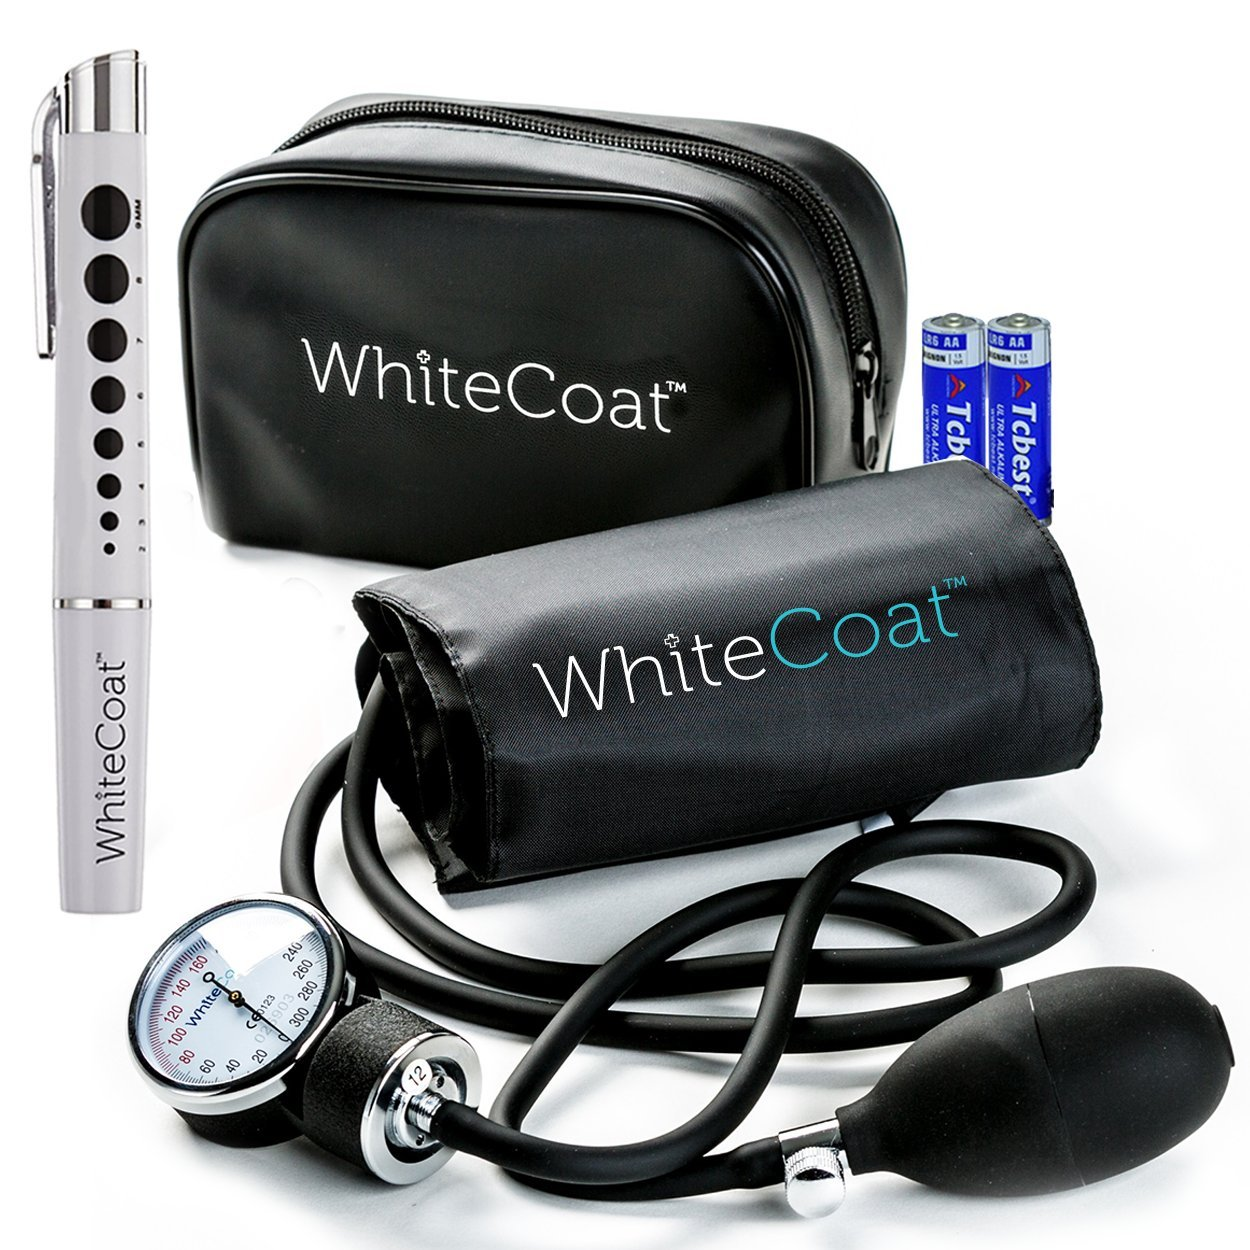 White Coat Manual Blood Pressure Cuff – Deluxe Aneroid Sphygmomanometer with Bonus LED Penlight, Adult Sized Black Cuff and Carrying Case Included